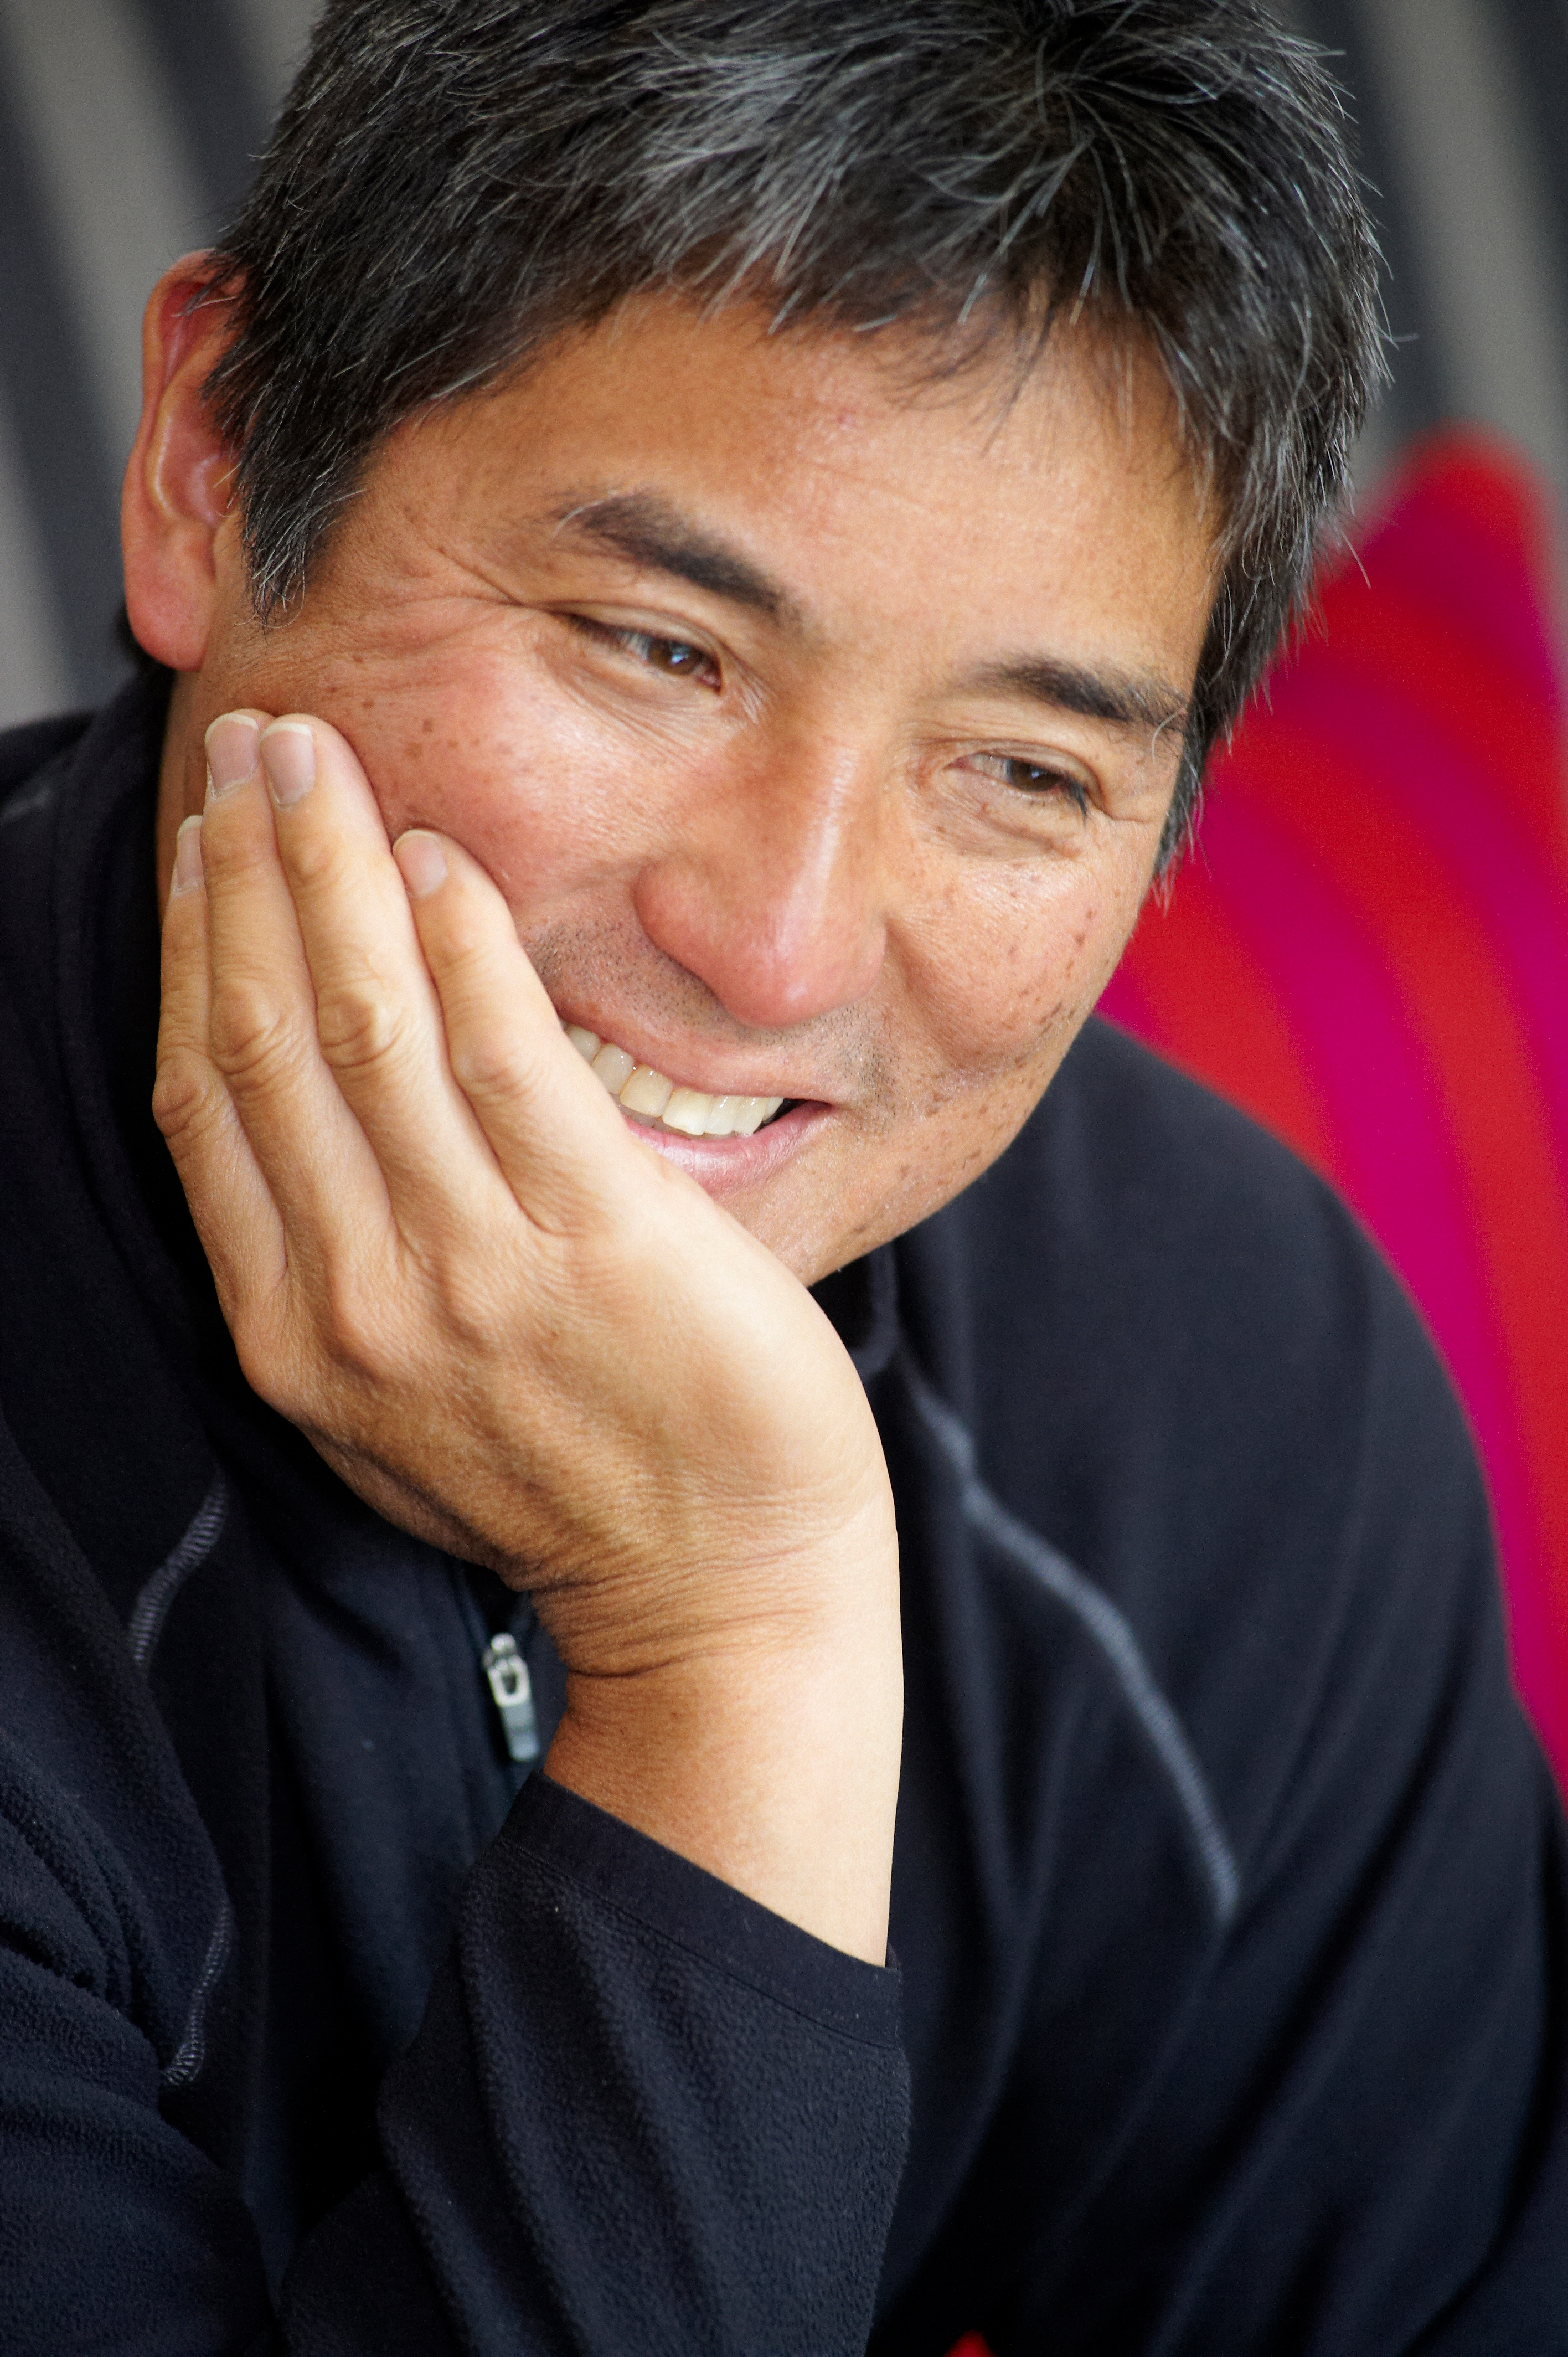 GuyKawasaki9 resized 207